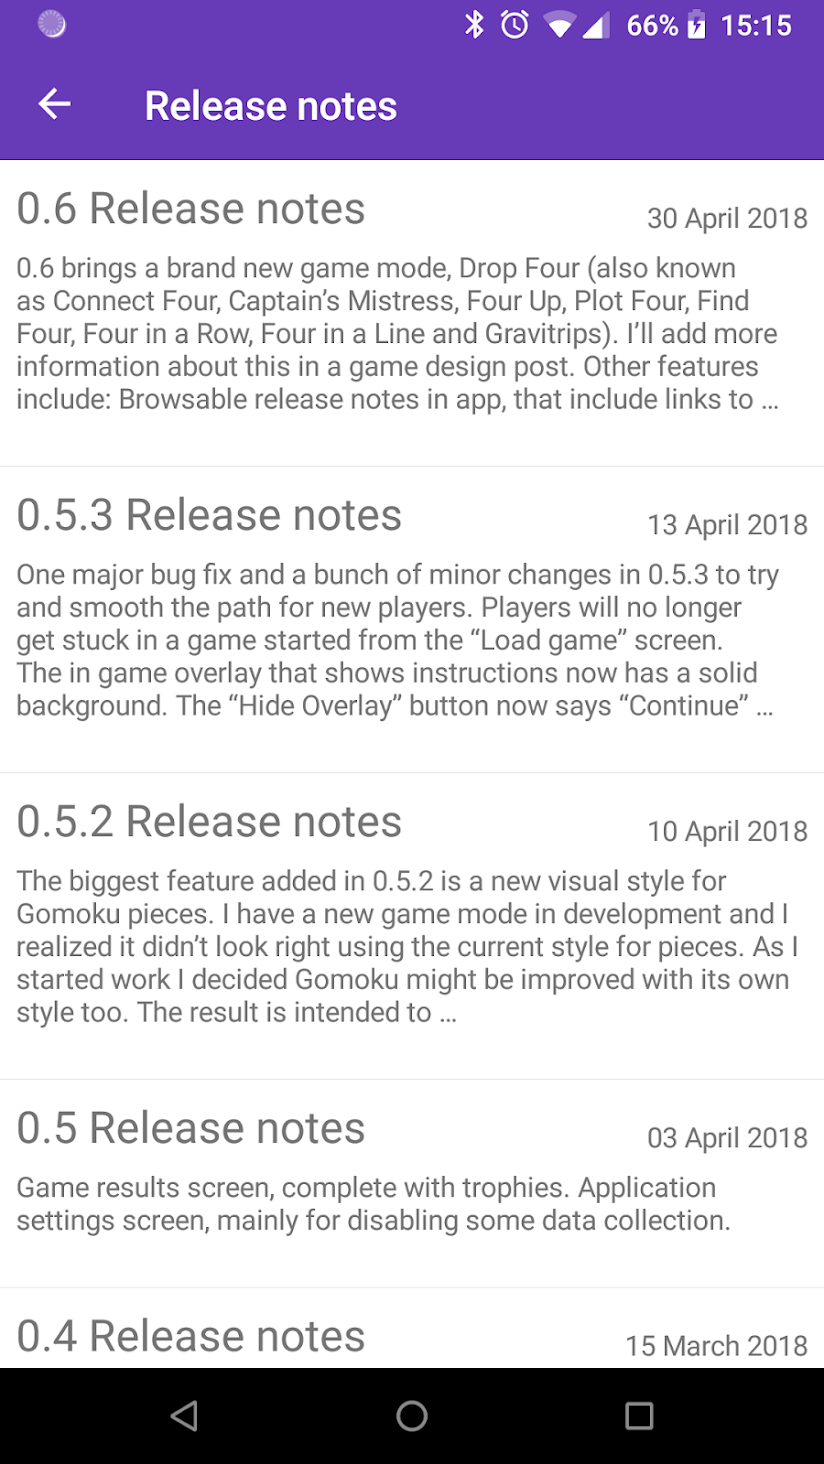 Release notes in 0.6